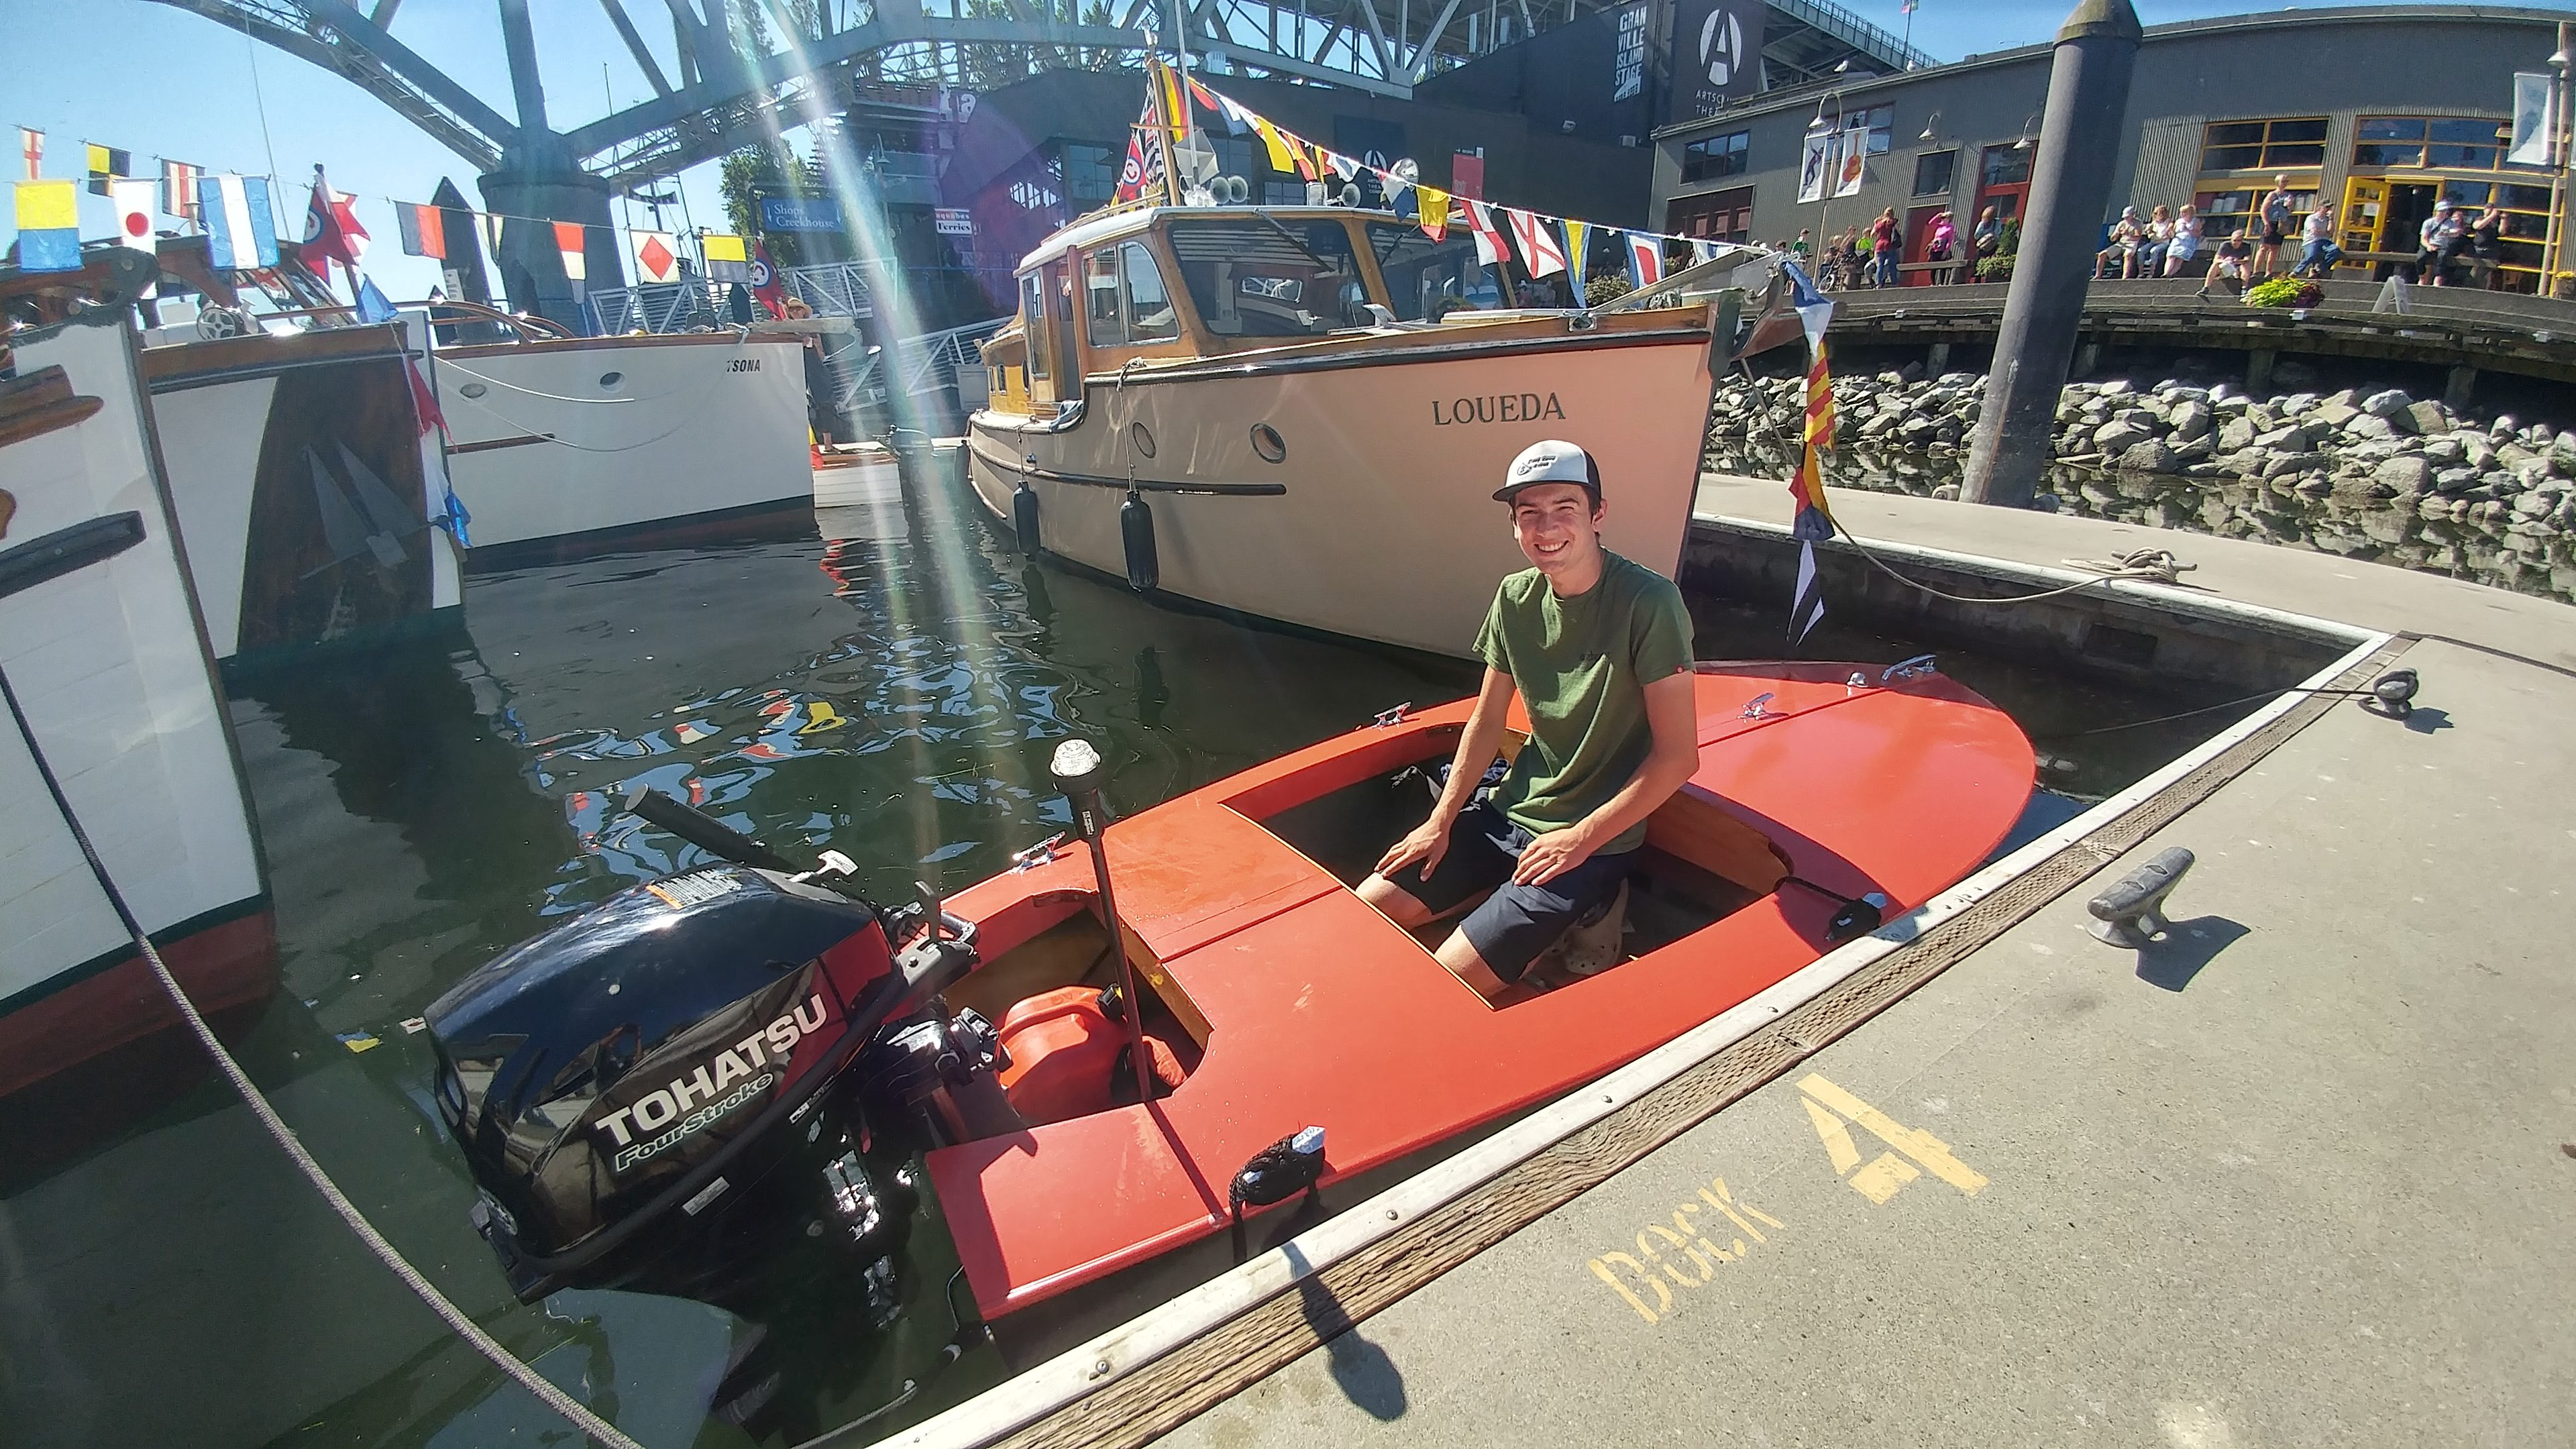 2017 Awards The Vancouver Wooden Boat Societythe Vancouver Wooden